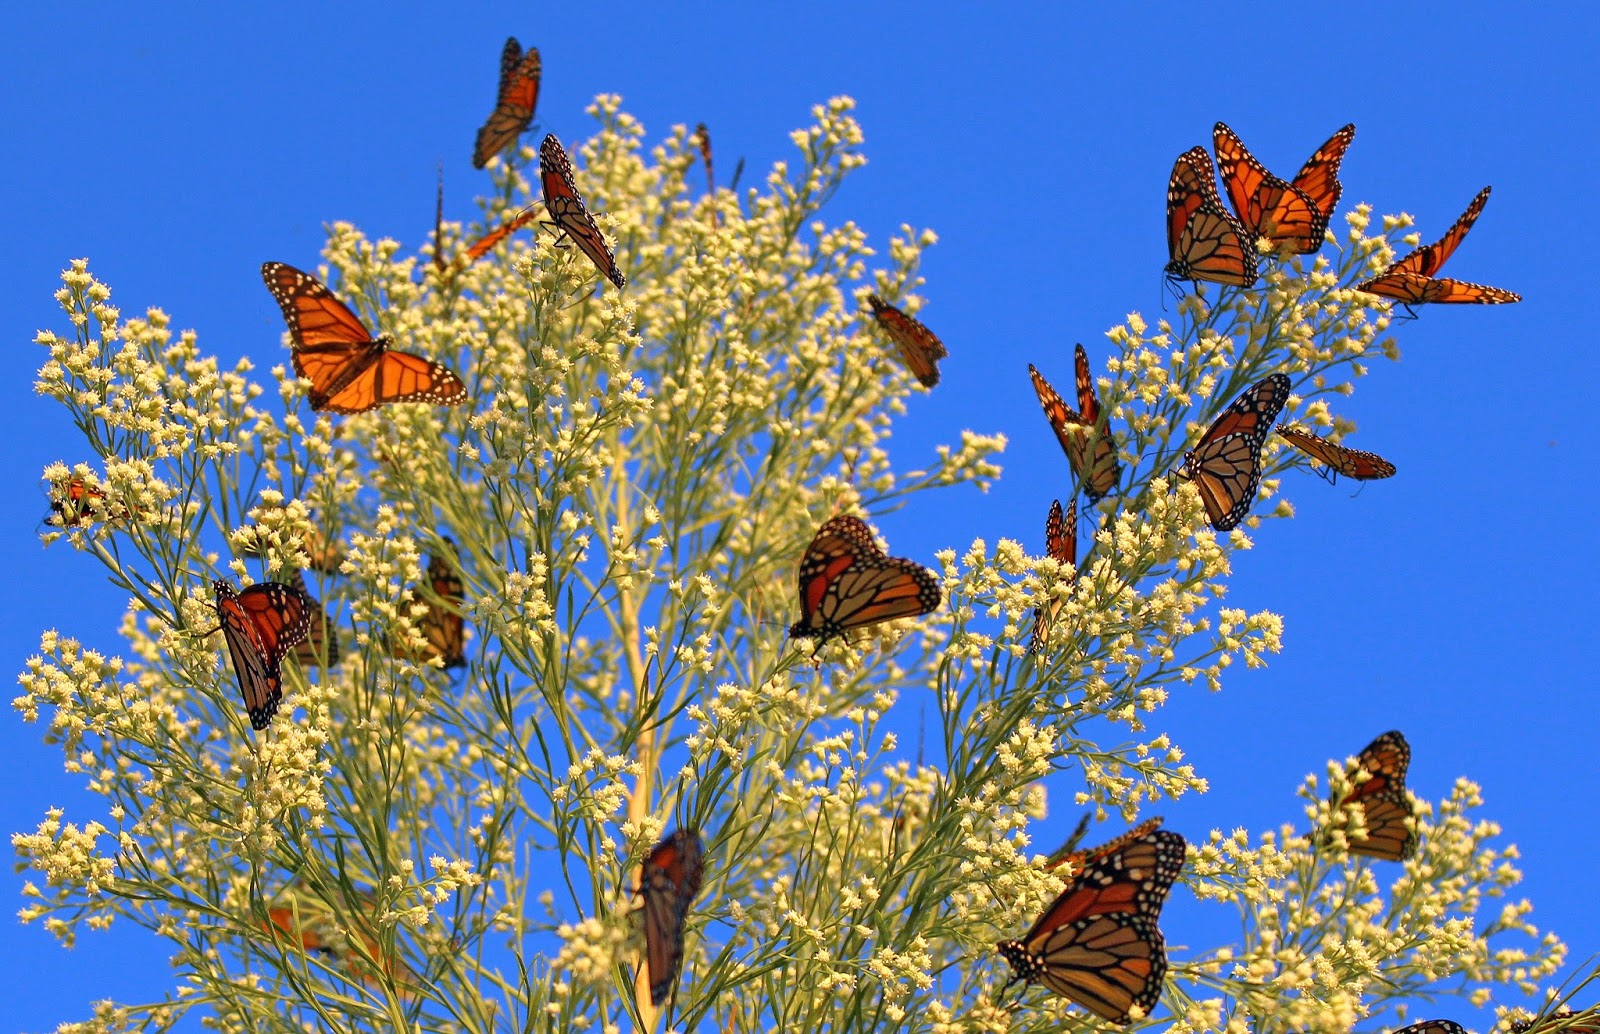 Monarch butterfly migration tree - photo#32